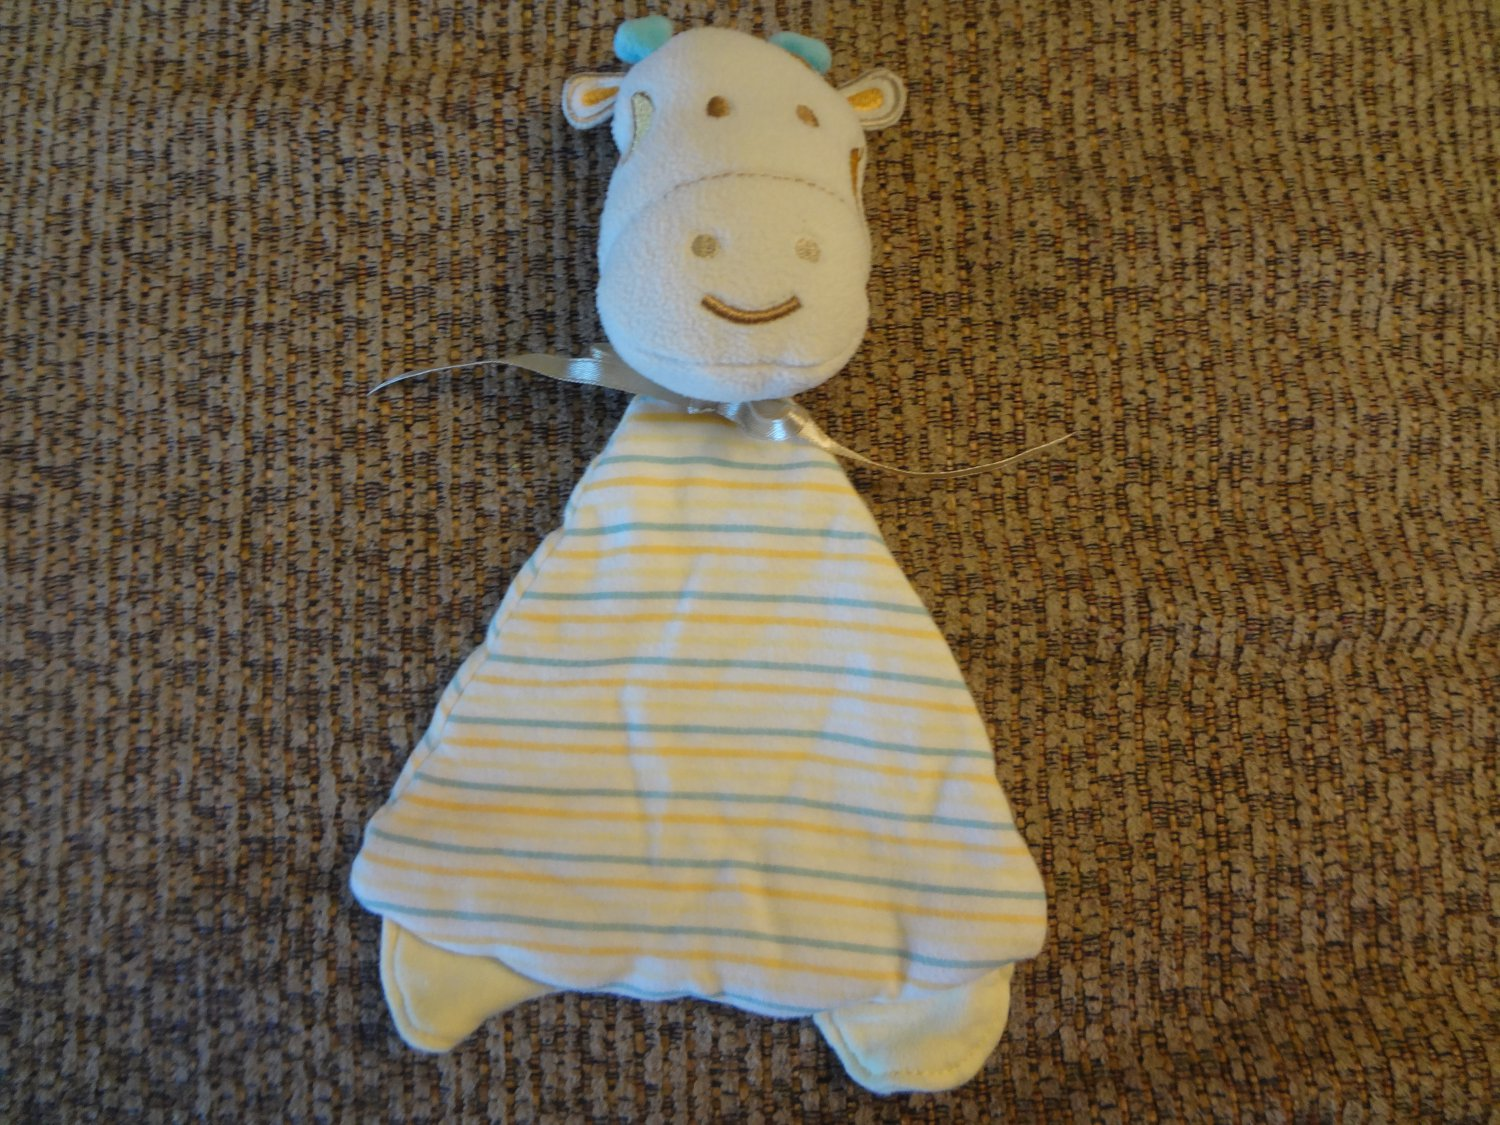 Baby Gear Plush Top Striped Blue Horns Yellow Feet Golden Satin Bow Giraffe Lovey Security Blanket